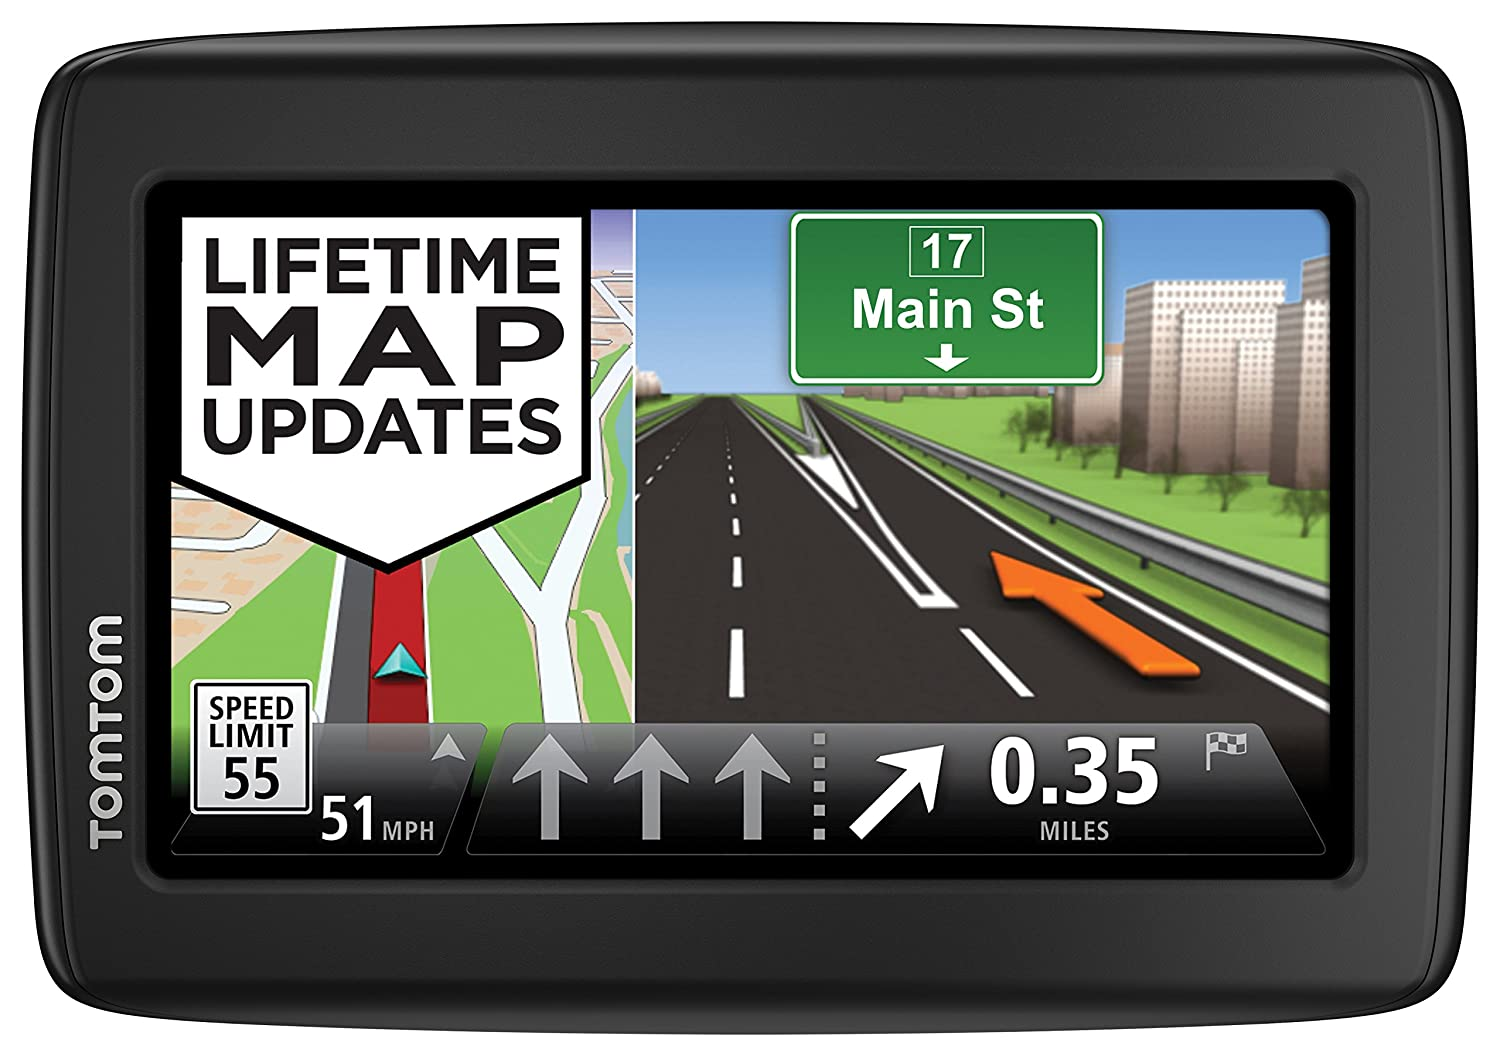 Tomtom 4en52 Z1230 Manual In An Eg H22 Distributor Wiring Diagram Amazon Com Via 1515m 5 Inch Gps With Lifetime Map Updates Rh Model Specs Review